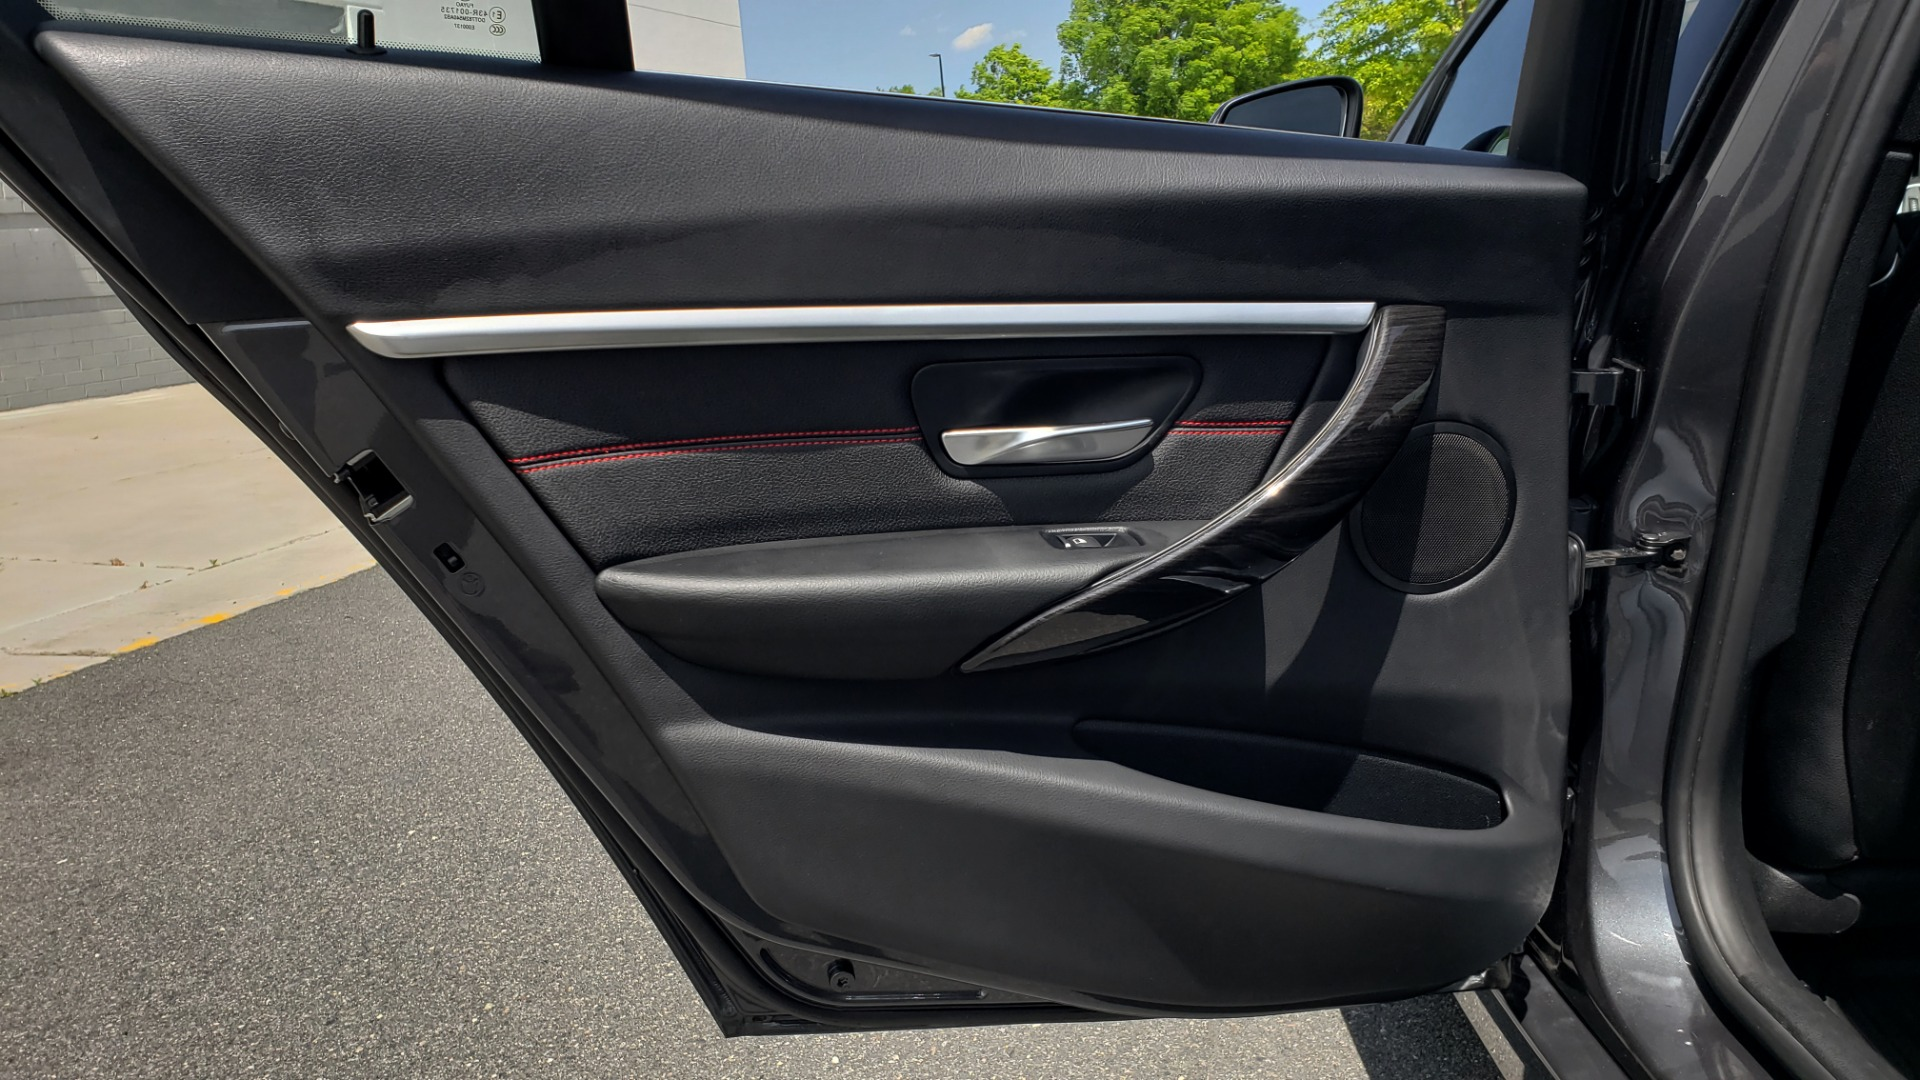 Used 2018 BMW 3 SERIES 330I XDRIVE / CONV PKG / SUNROOF / SPORT STS / HTD STS / REARVIEW for sale $28,495 at Formula Imports in Charlotte NC 28227 56